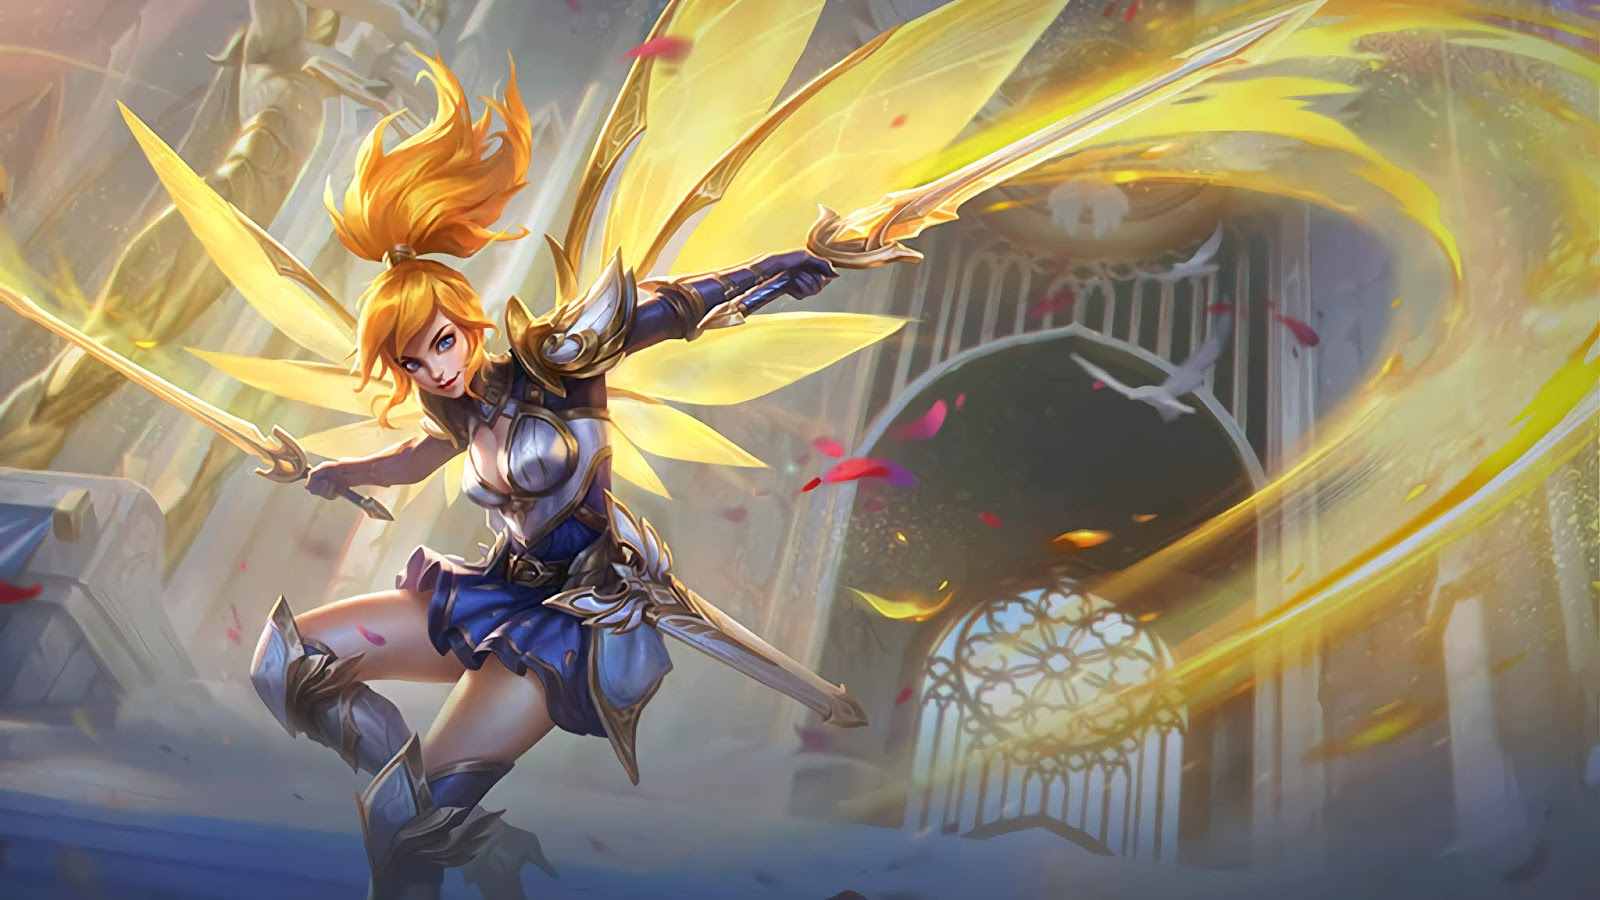 Wallpaper Fanny Lightborn Ranger Skin Mobile Legends Full HD for PC